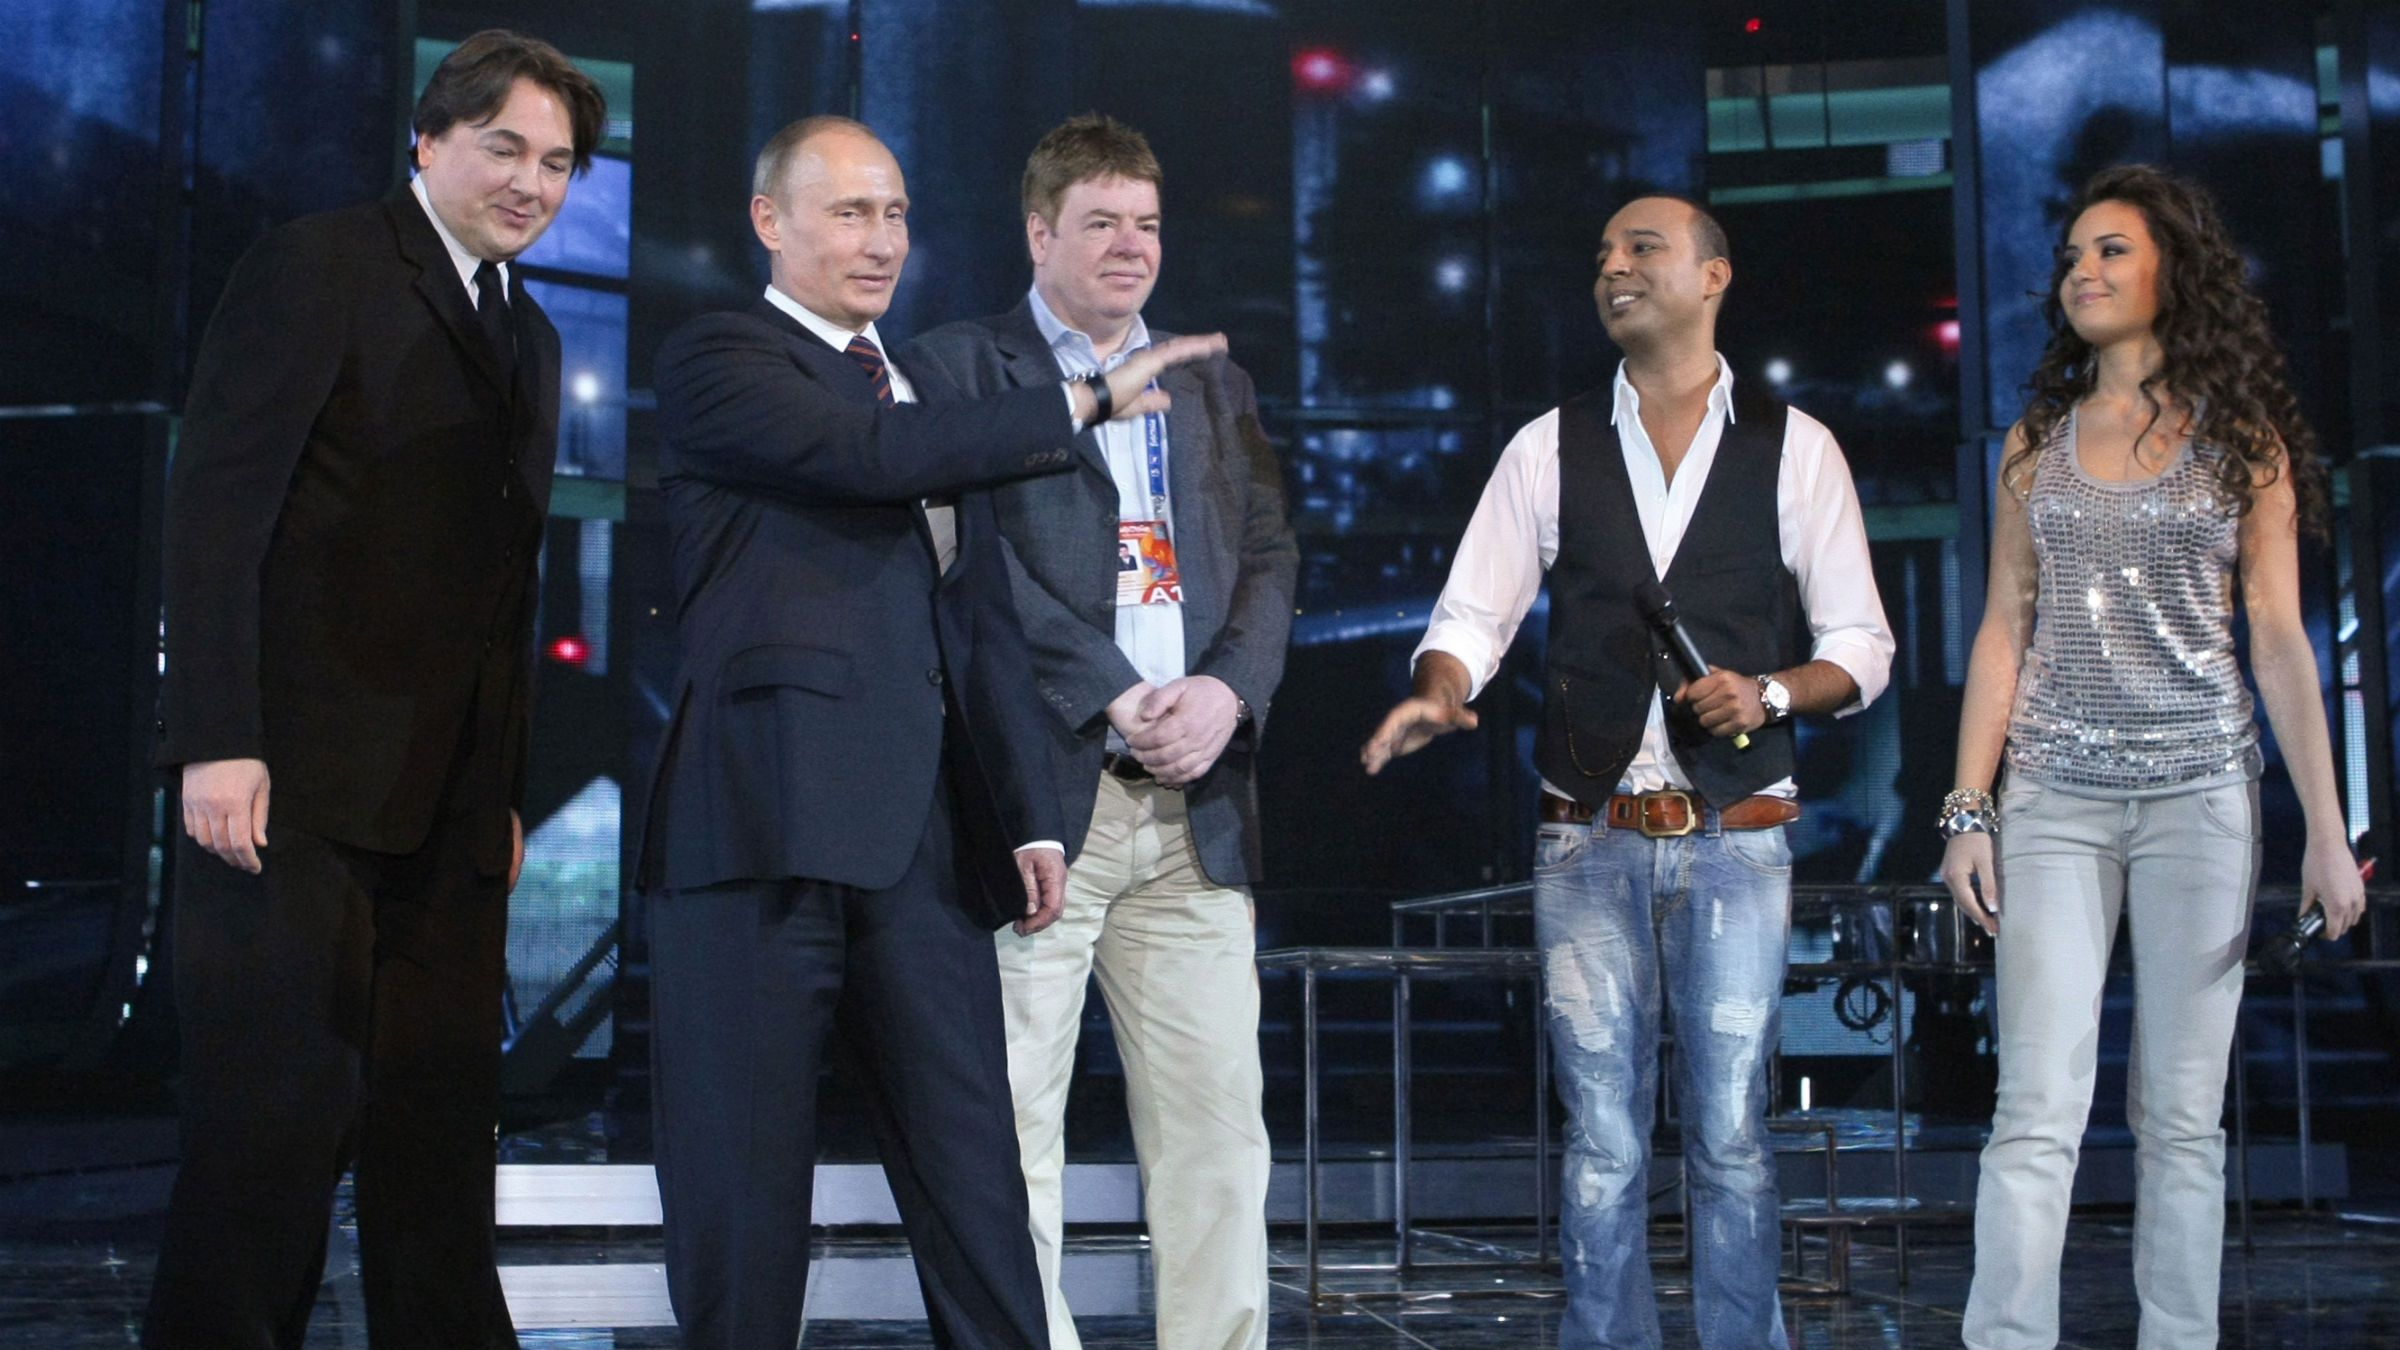 Russia's Prime Minister Vladimir Putin (2nd L) speaks next to director of the First Television Channel Konstantin Ernst (L) during Putin's visit to the Olympic Stadium in Moscow May 10, 2009. The stadium hosts the Eurovision Song Contest.